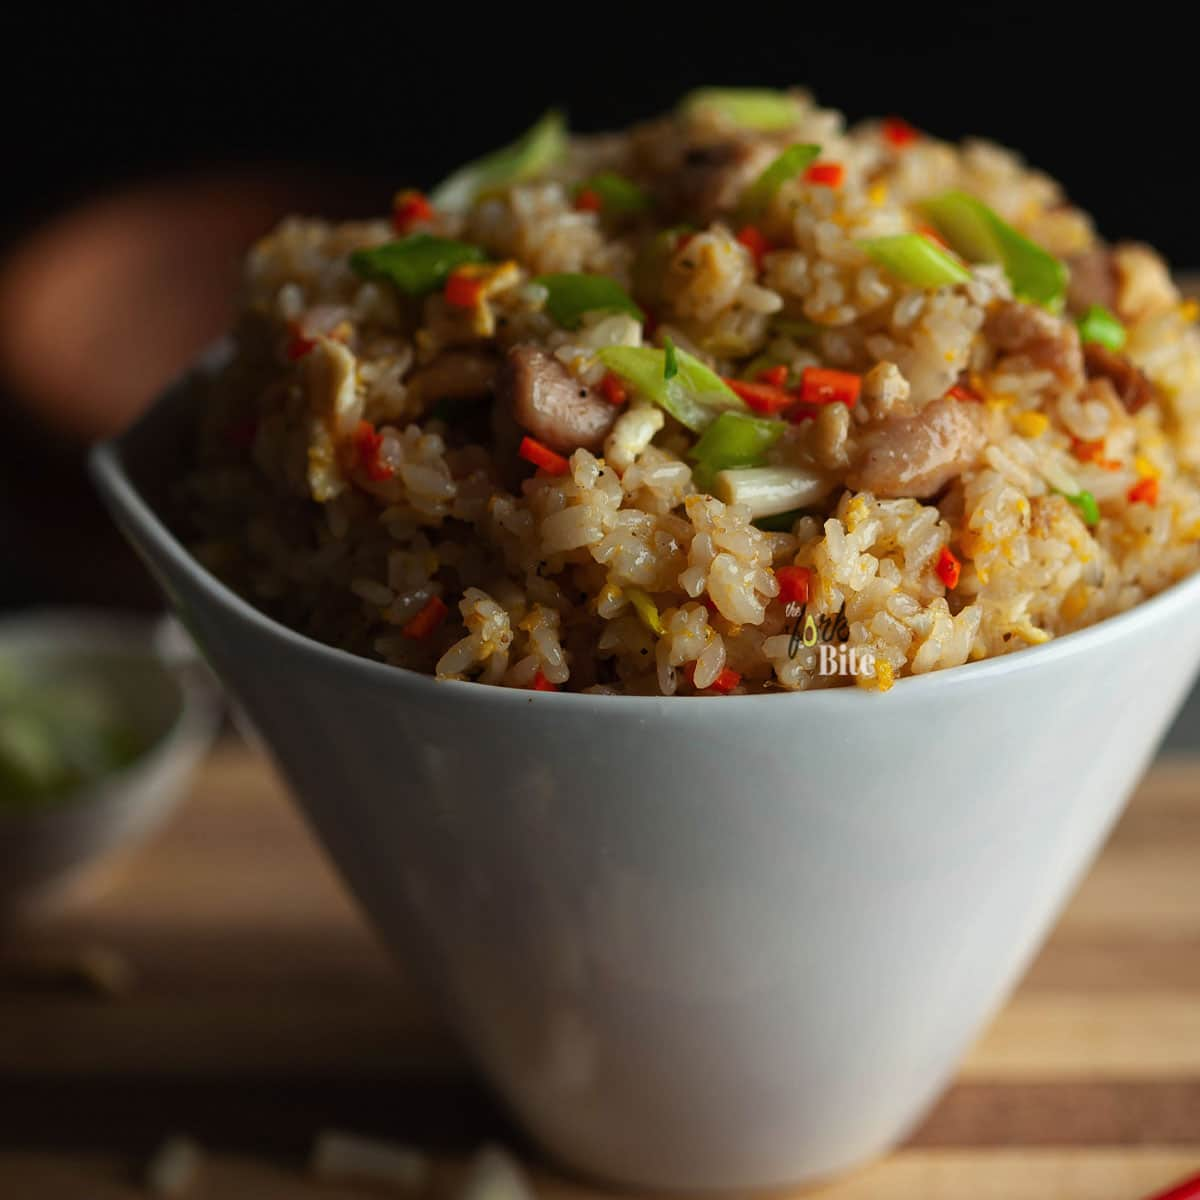 This Benihana Chicken Fried Rice is the perfect copycat recipe for homemade hibachi, just like the one served at Benihana. It's super delicious and easy to make at home, no tricks required, only lots of garlic butter.